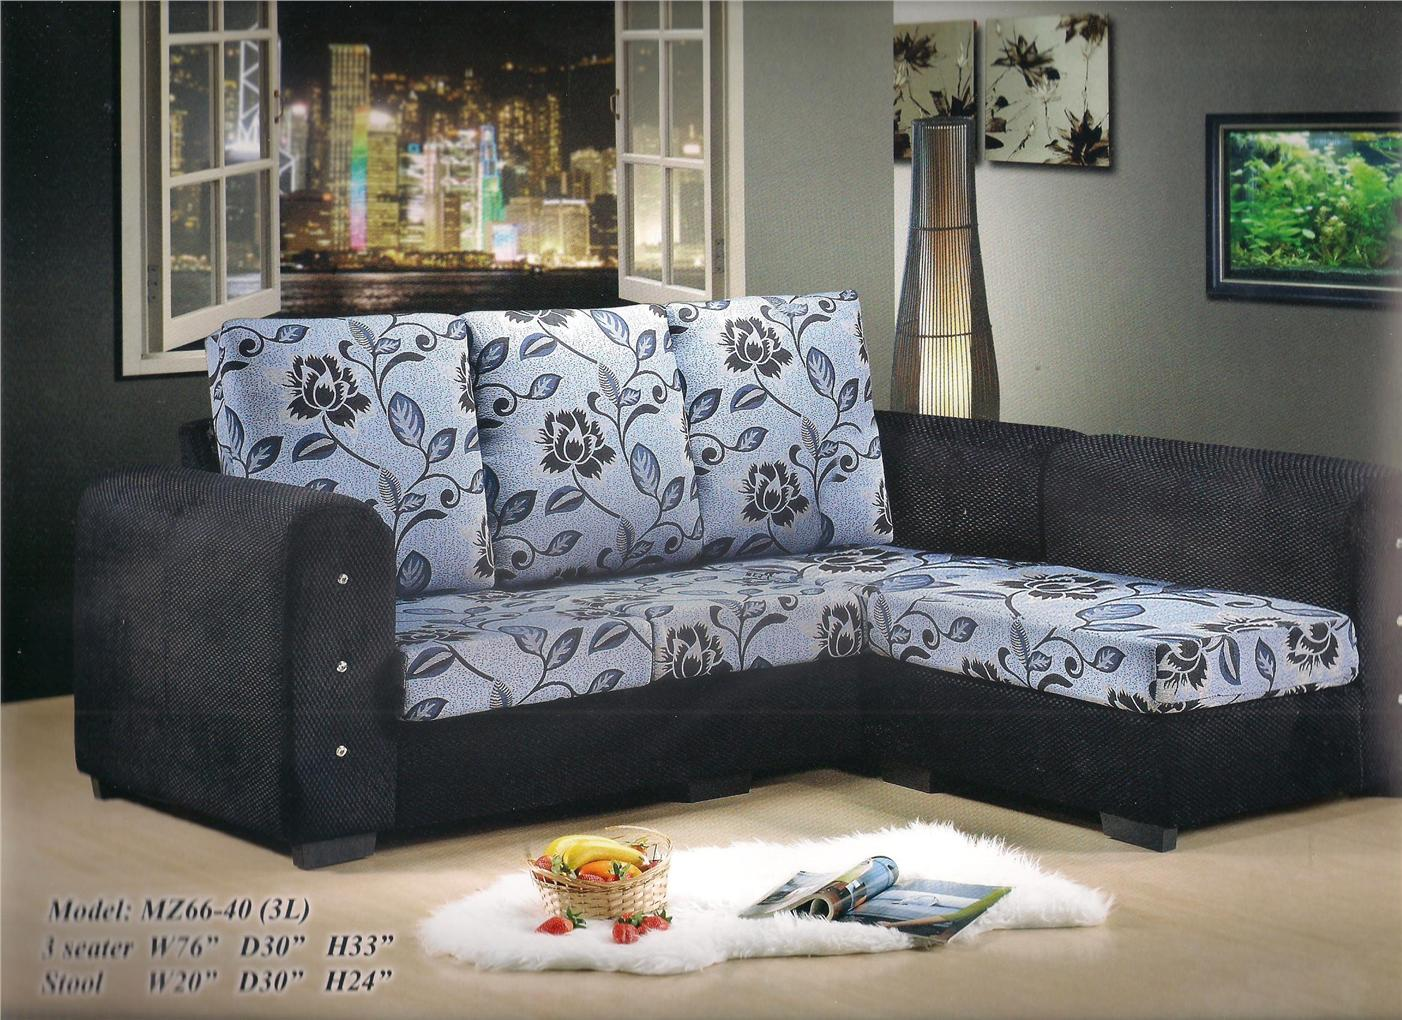 living room sofa malaysia how to remove oil stain from leather l shape melaka brokeasshome